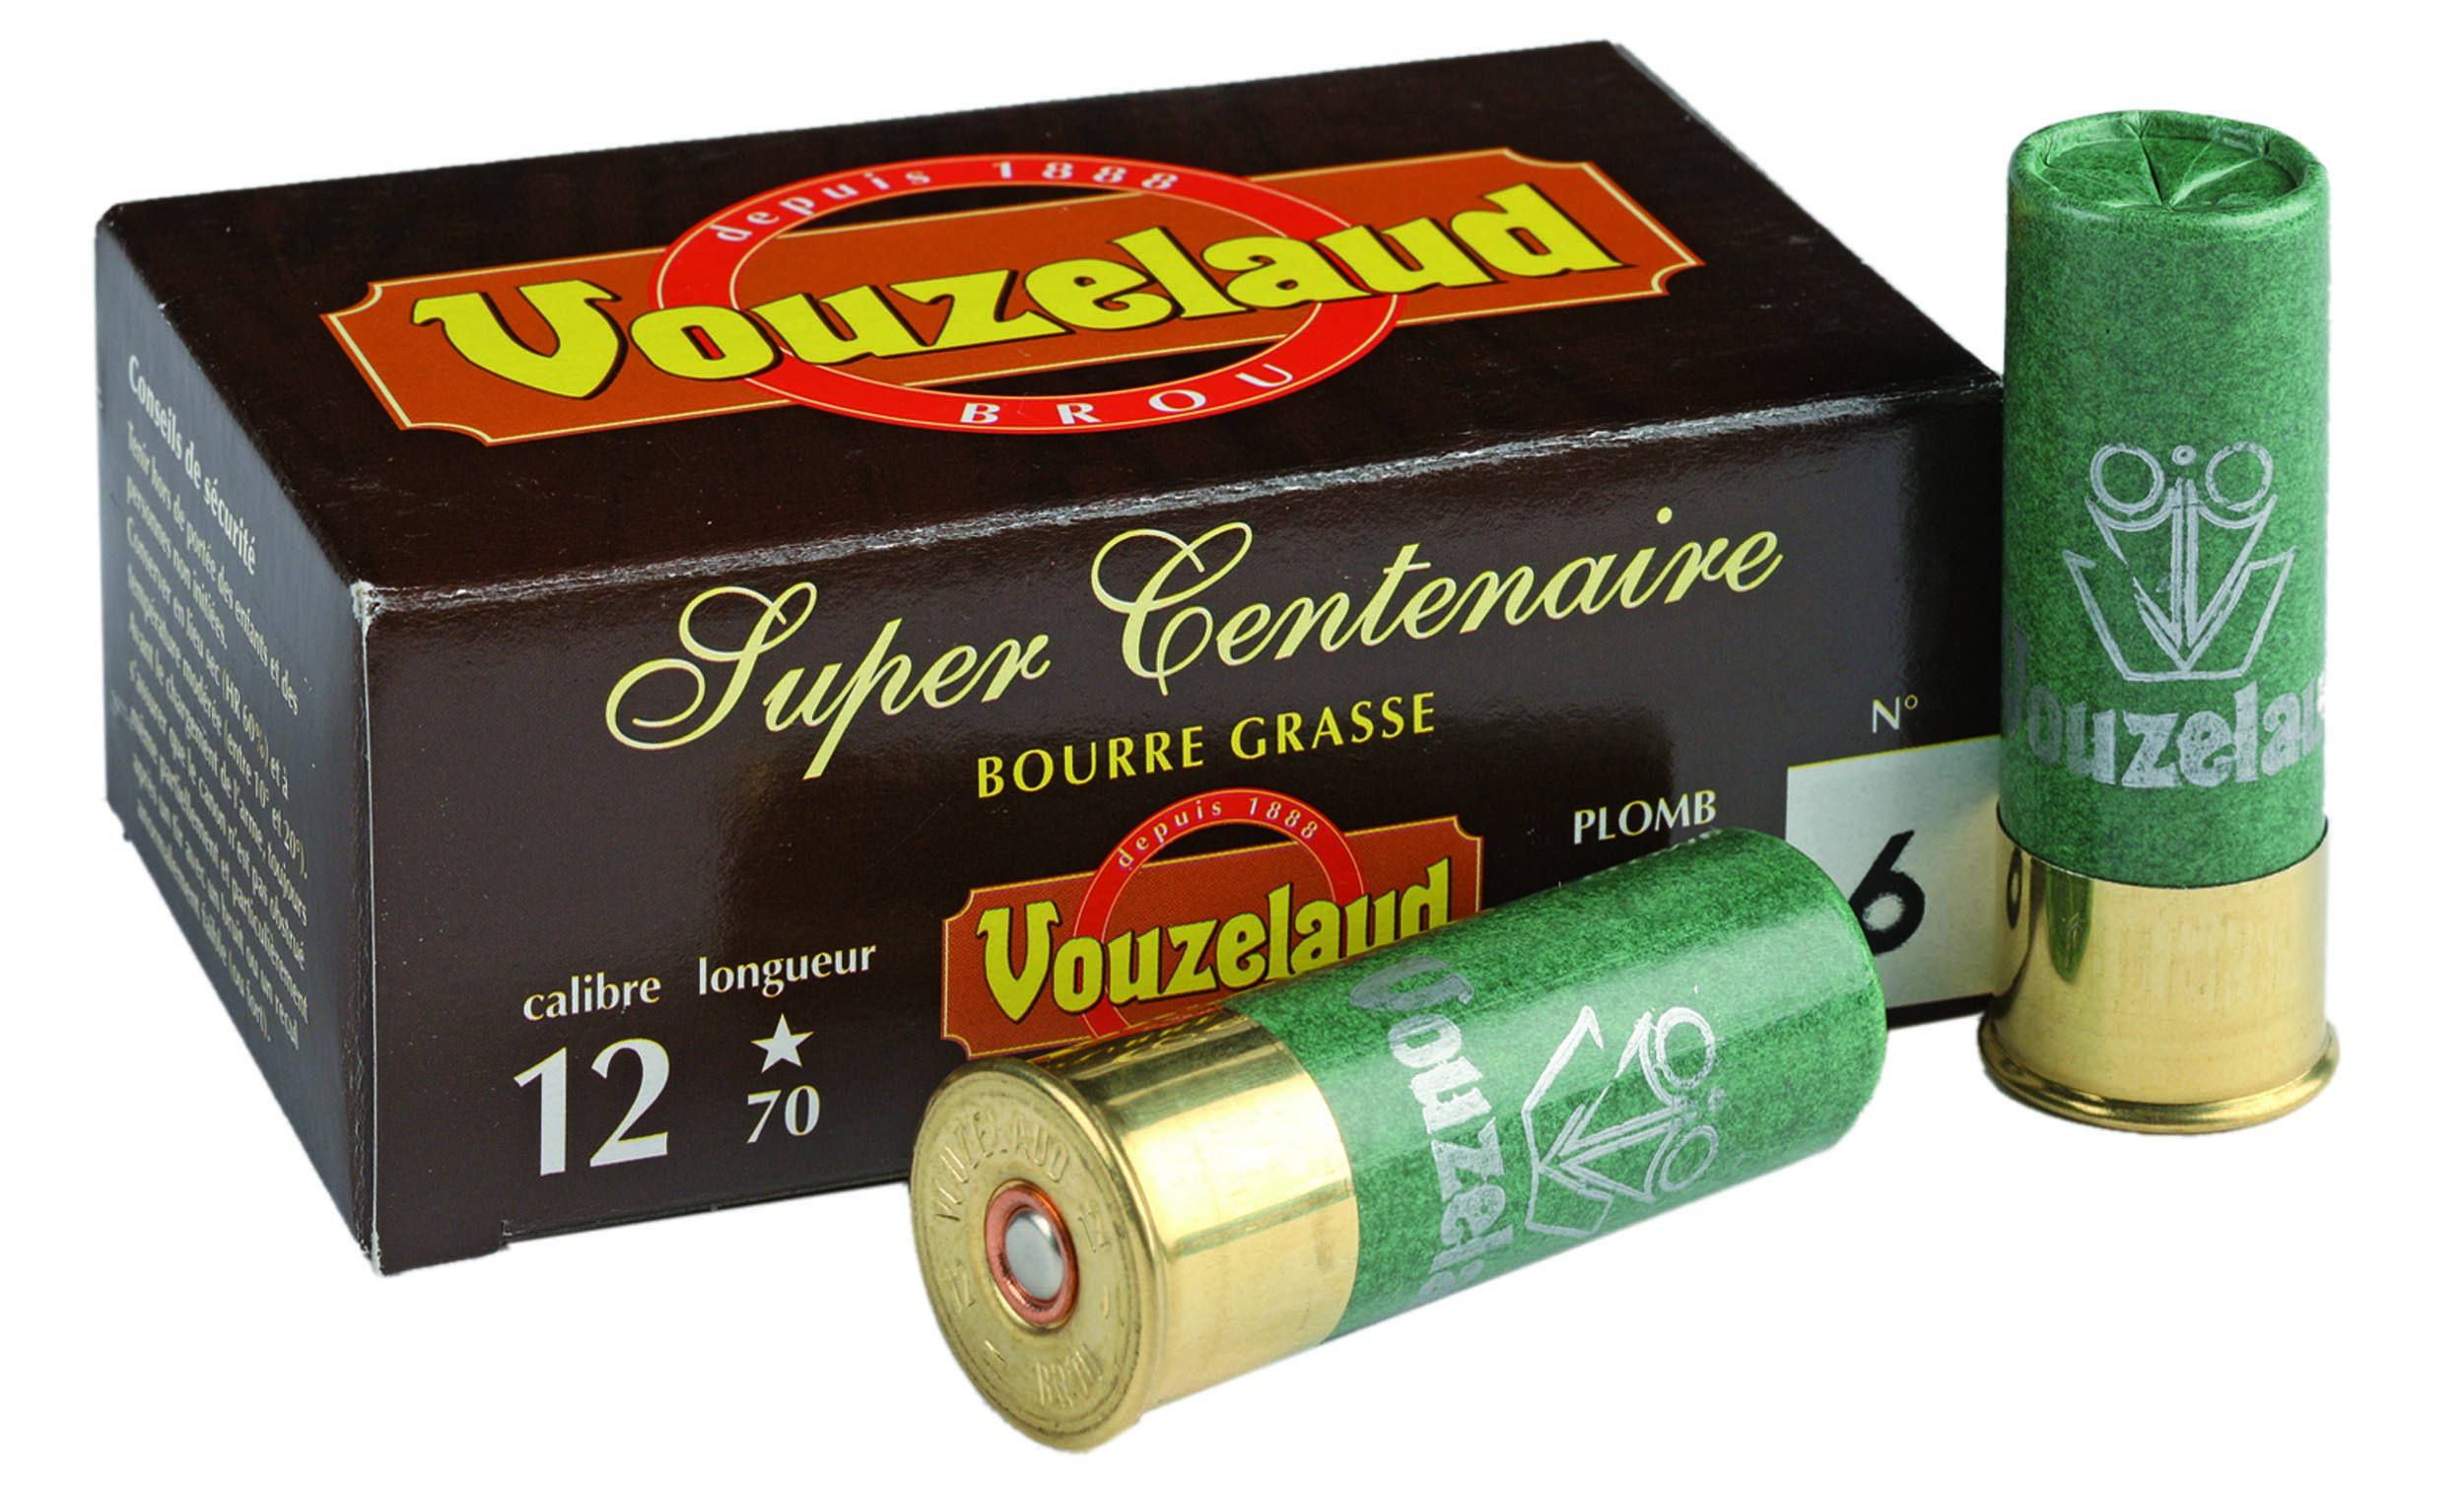 ML3214 Cartridges Vouzelaud - Super Centennial - Cal. 12/70 - ML3214